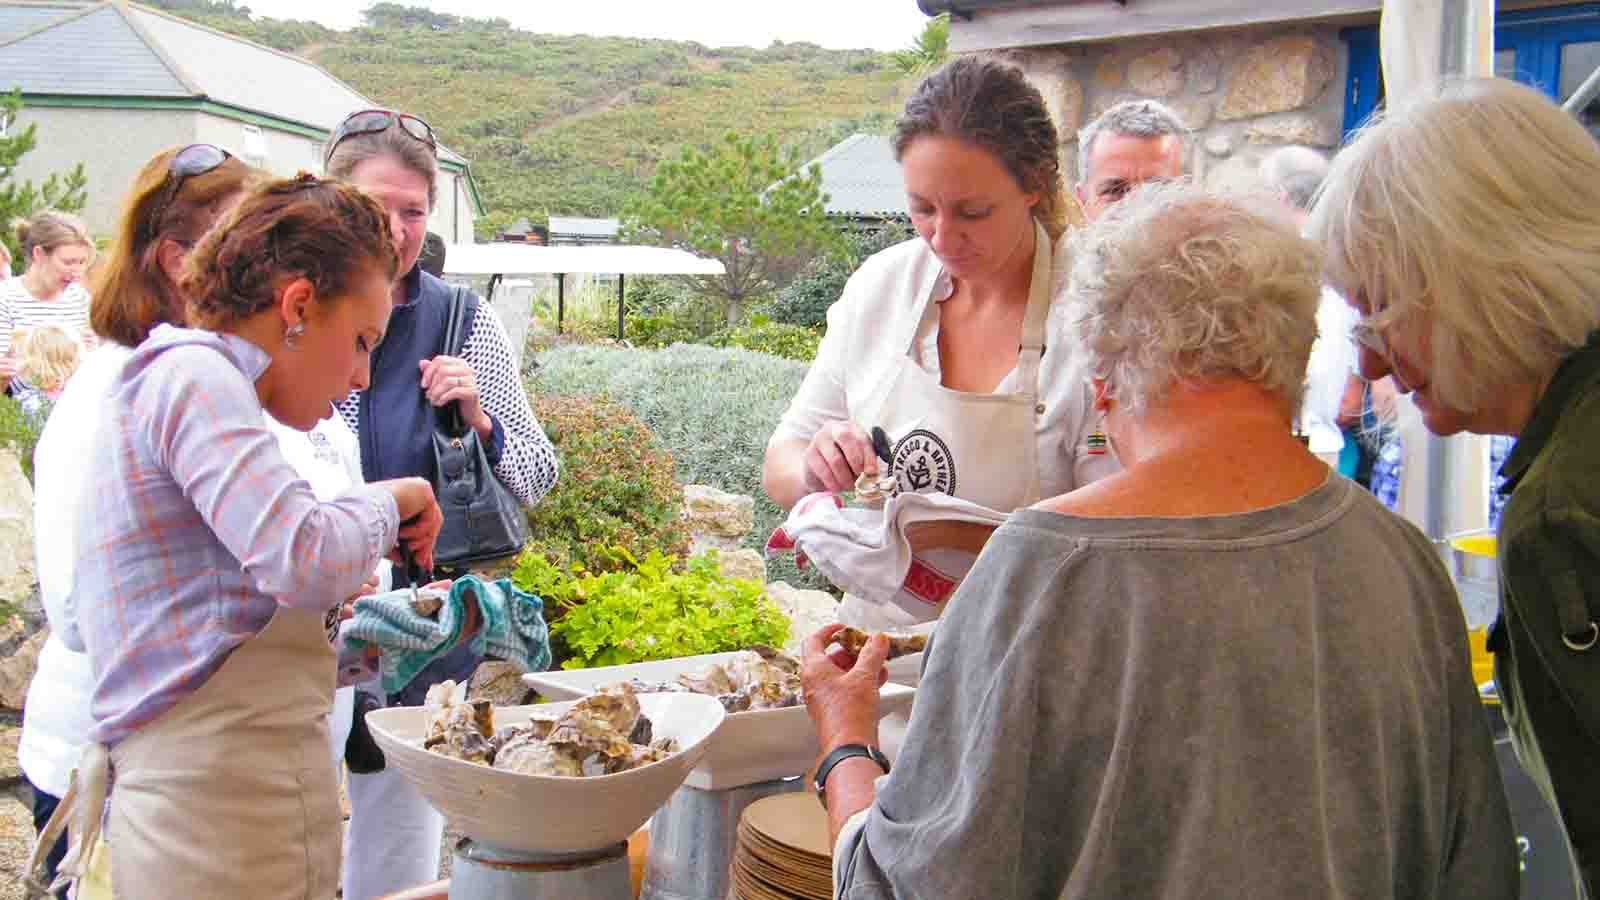 Issy Tibbs On Scilly's Food Producers